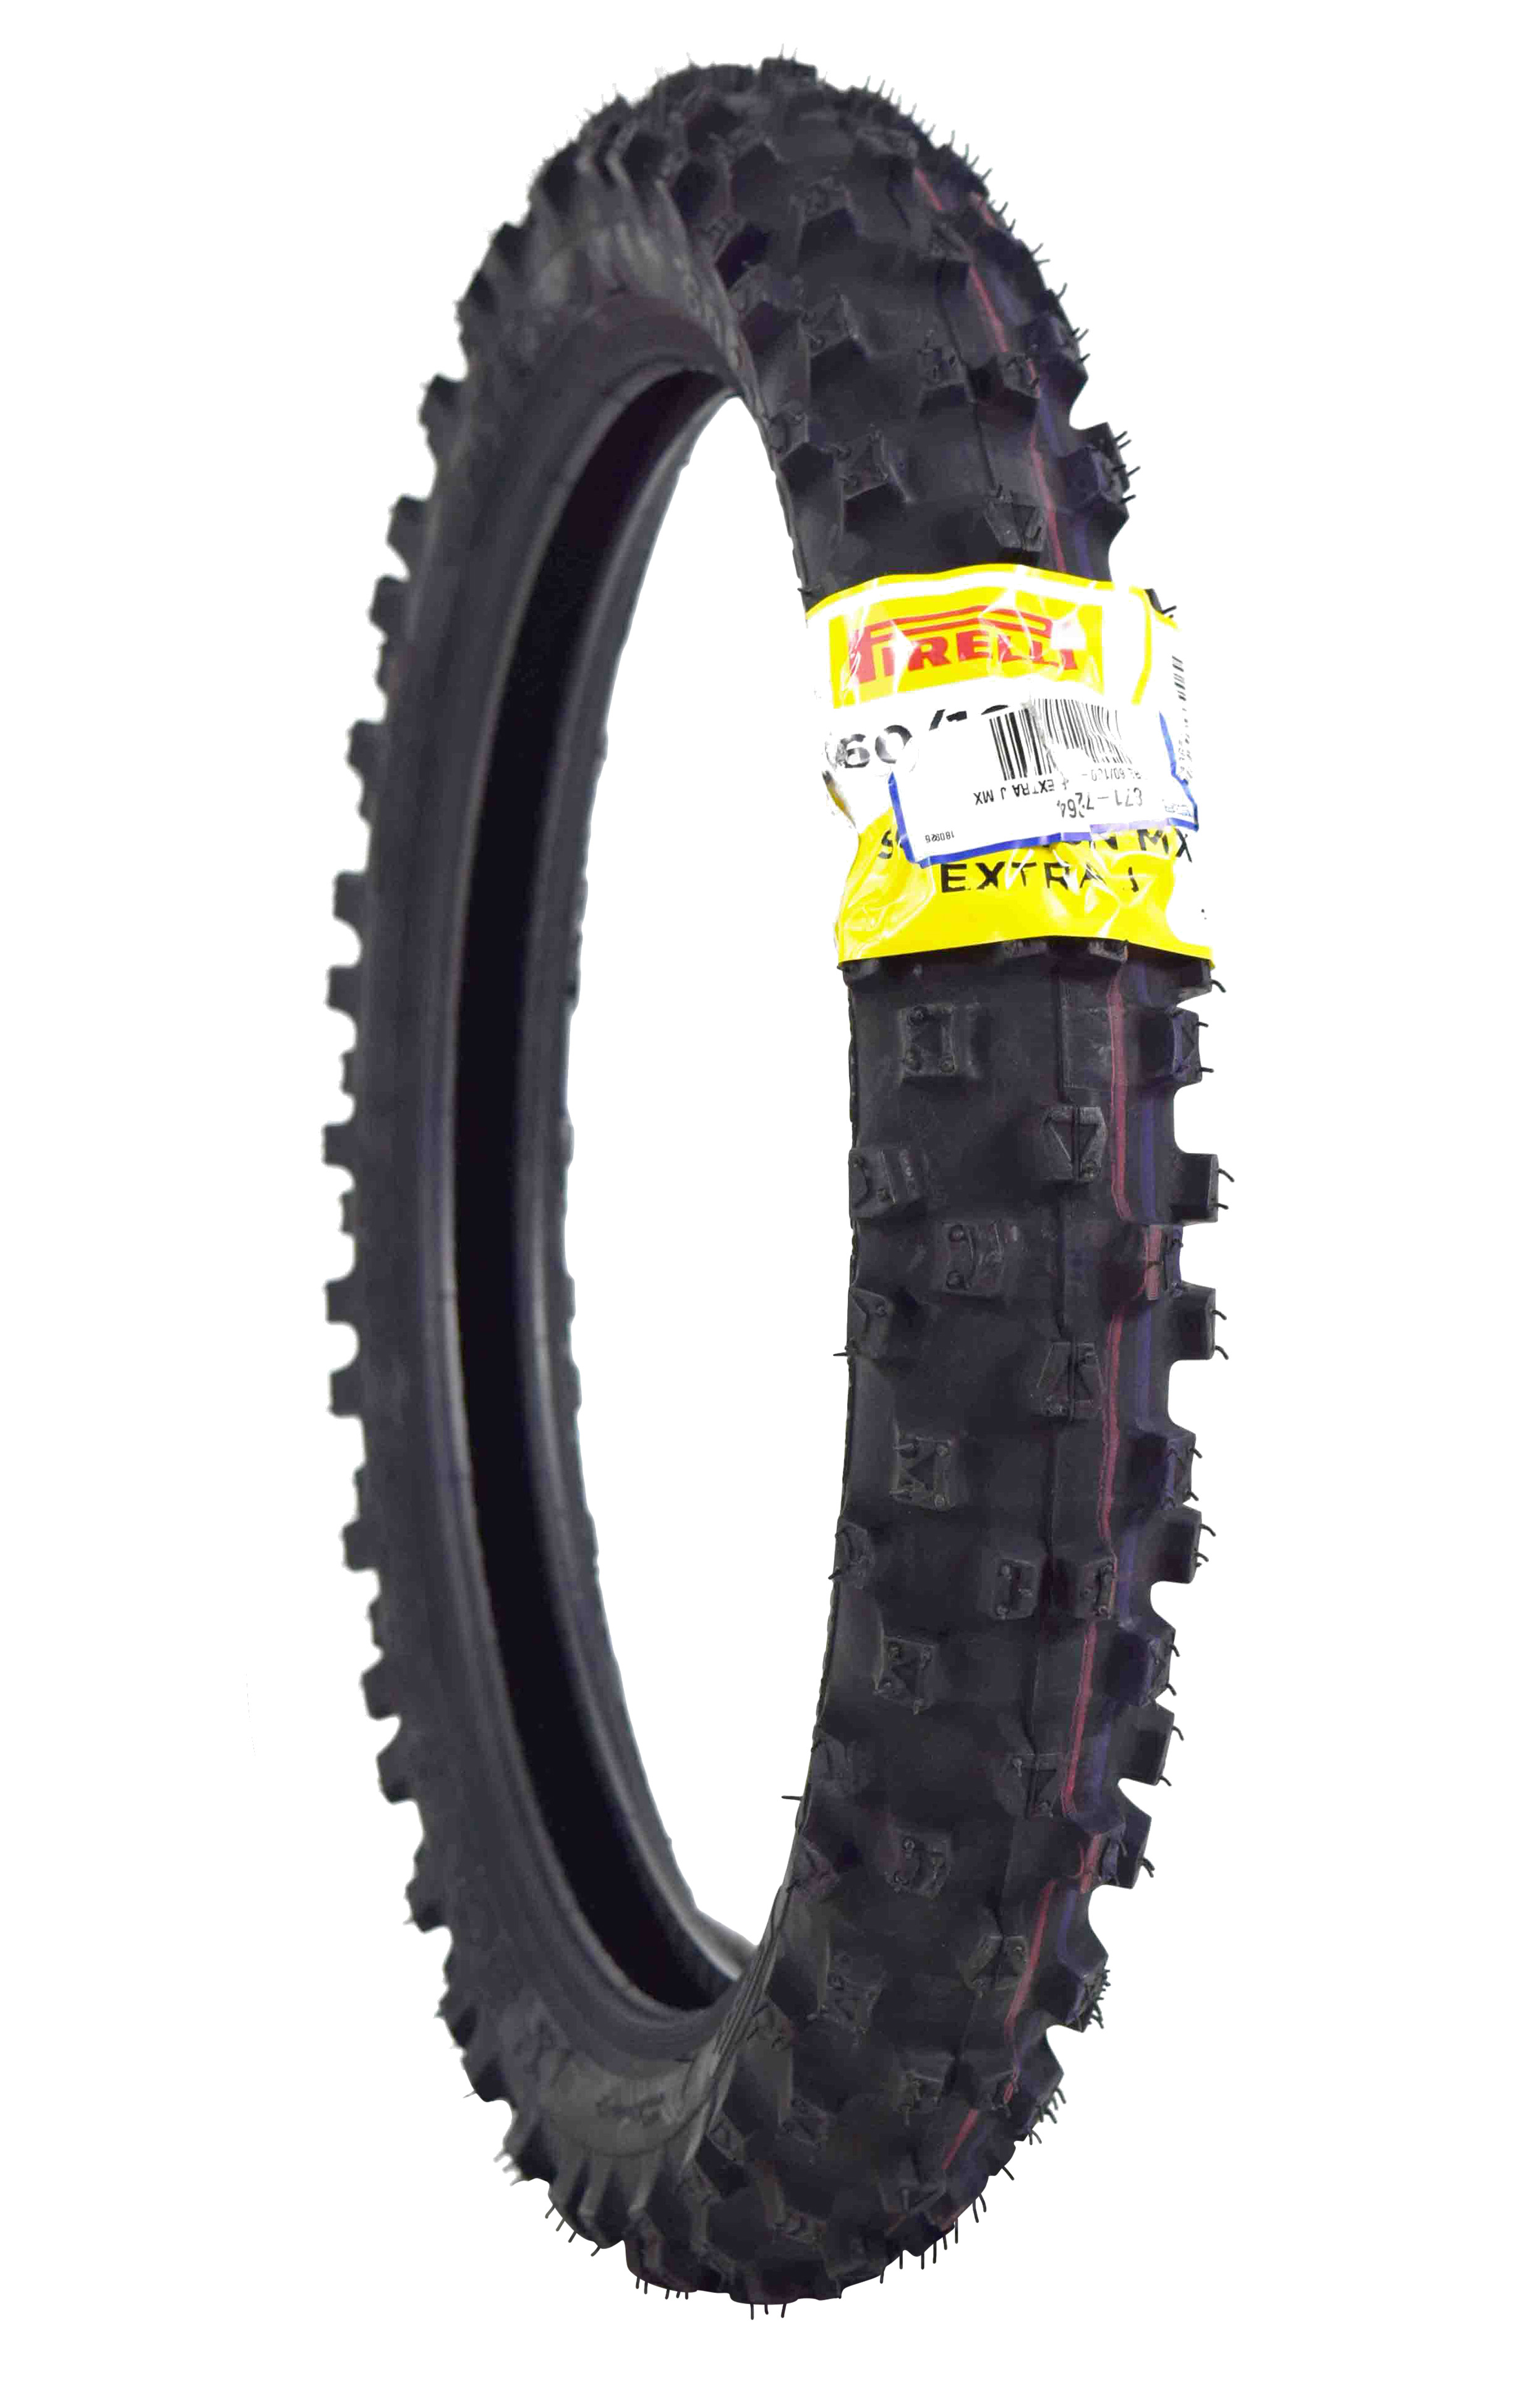 Pirelli-Scorpion-MX-Extra-J-60-100-14-Front-80-100-12-Rear-Pit-Bike-Motorcycle-Tires-Set-image-2